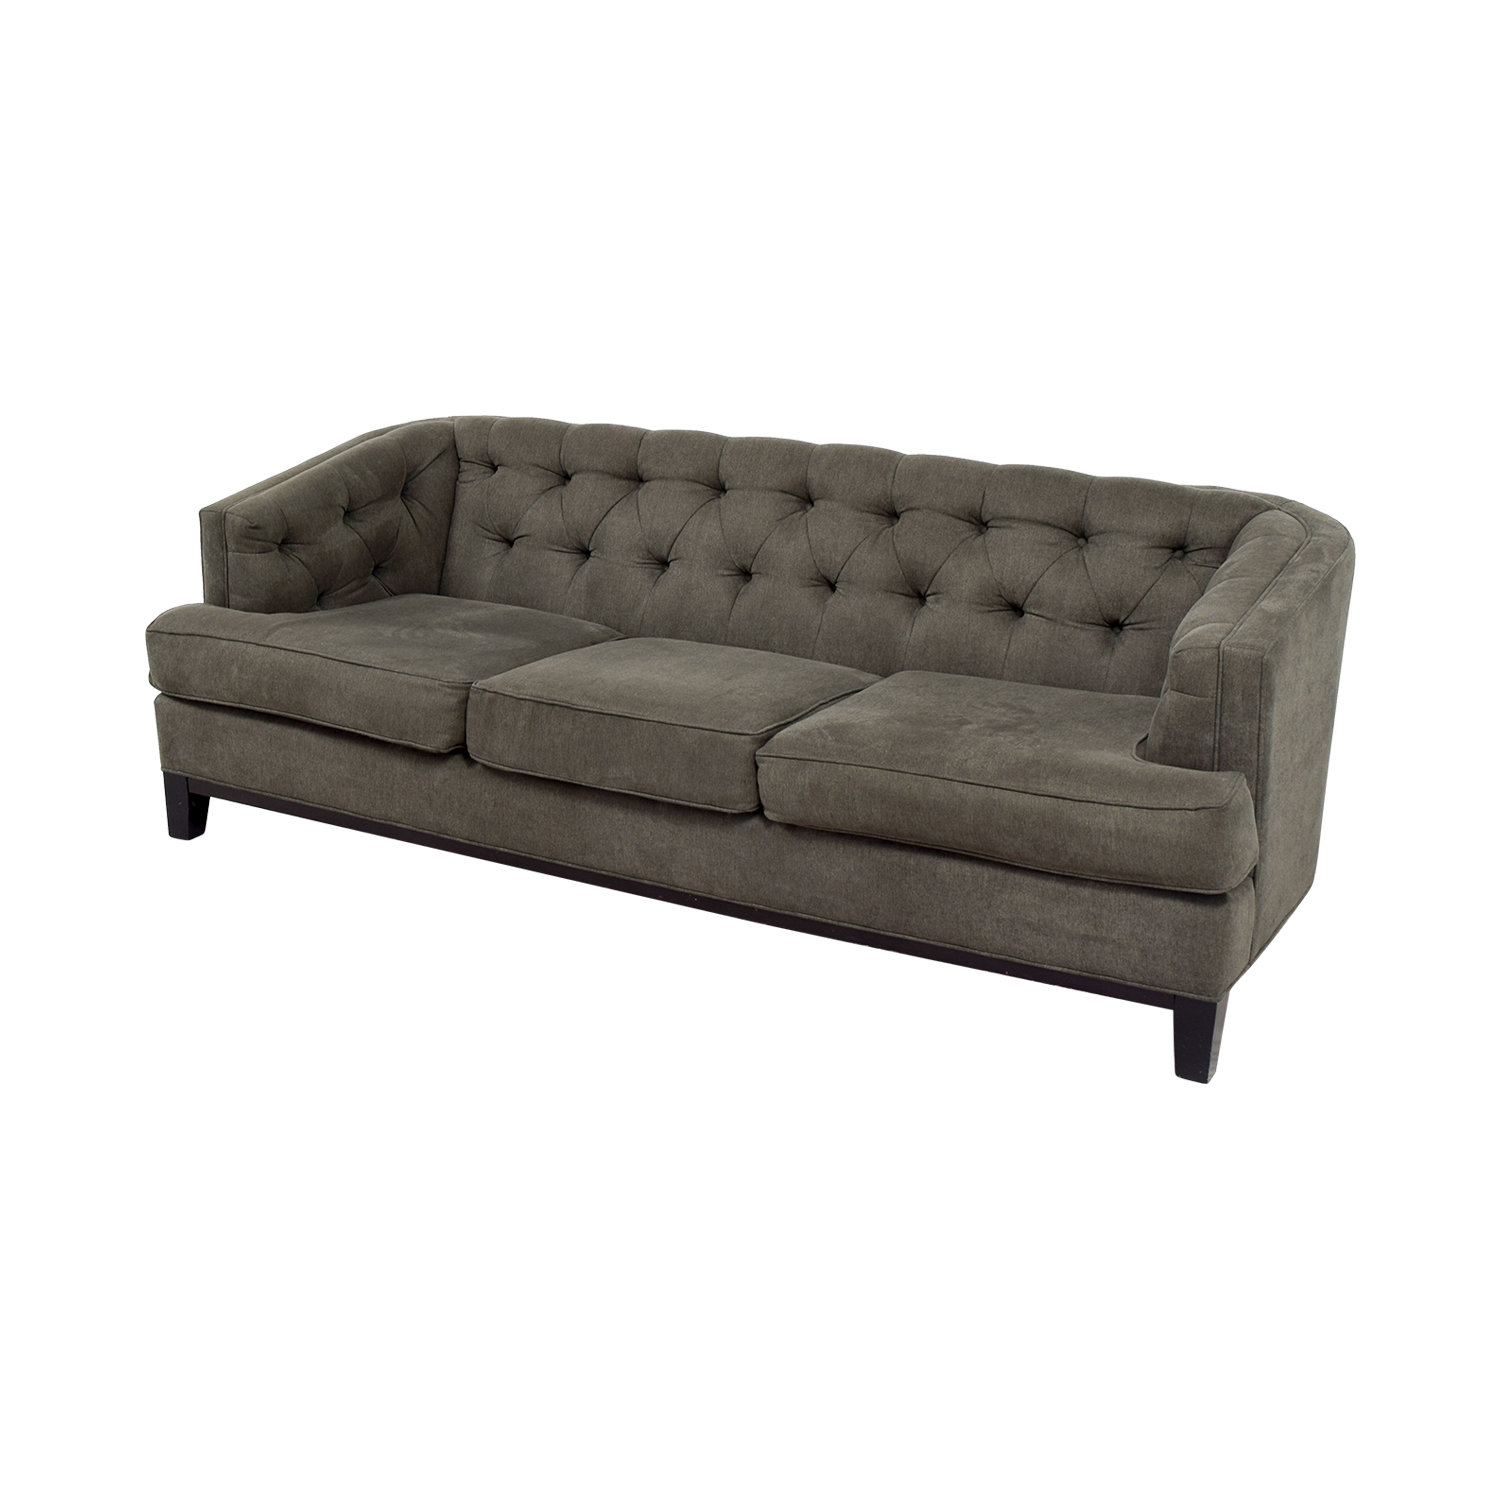 Rooms To Go Rooms To Go Tufted Sofa coupon